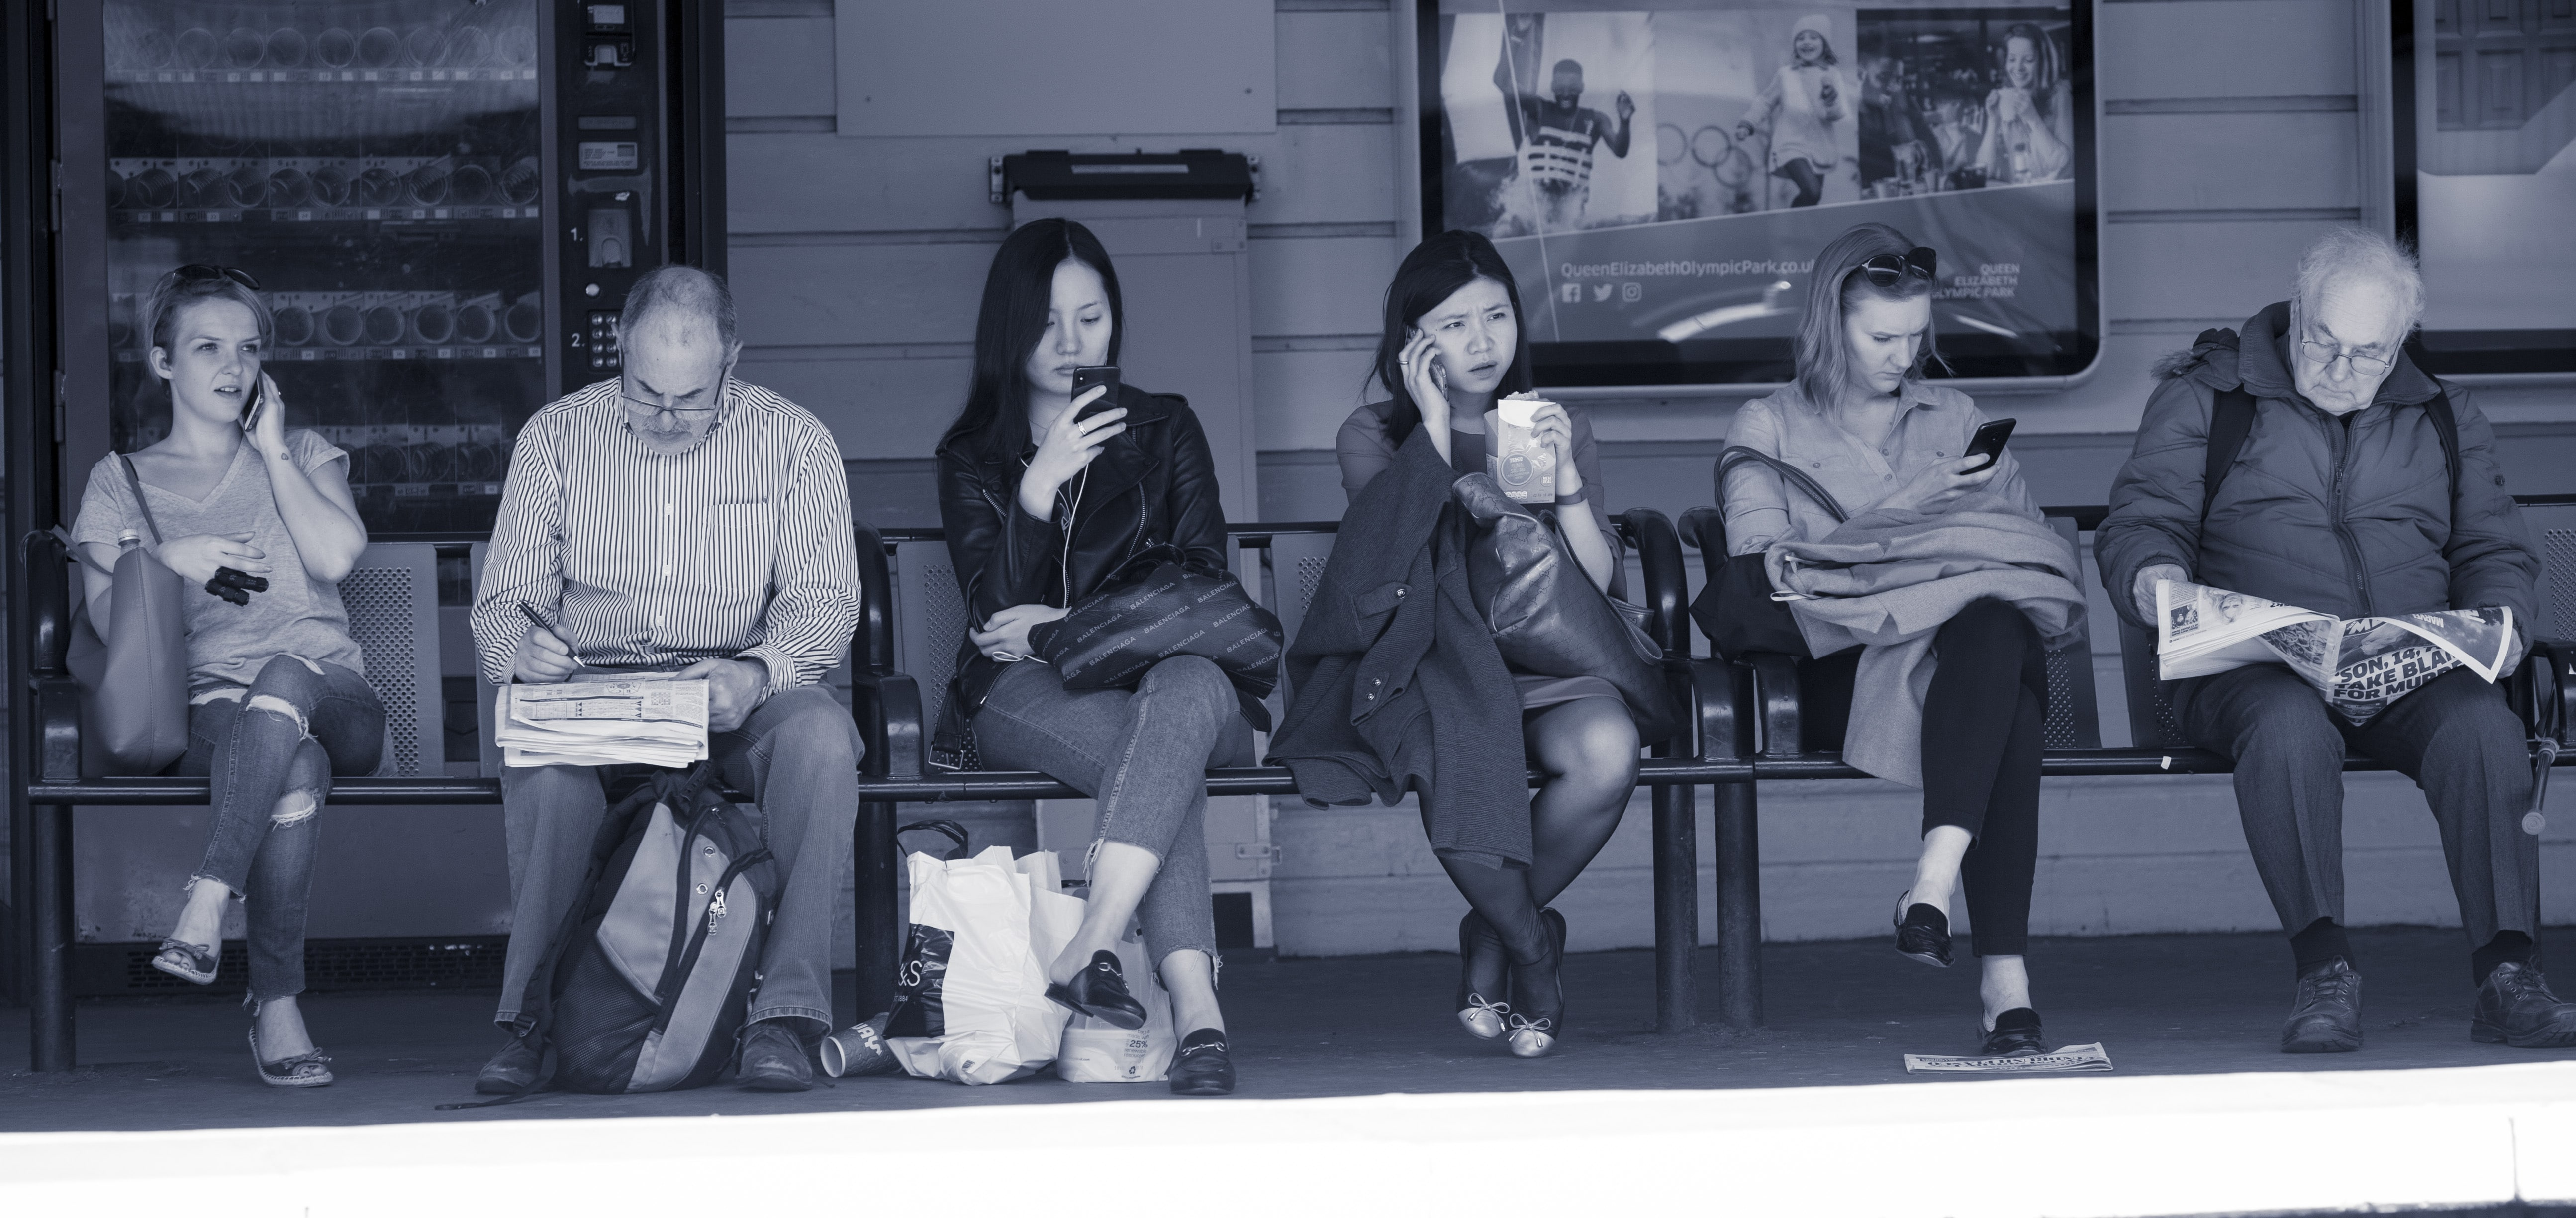 Passengers sitting in a row on a station platform, texting or reading newspapers